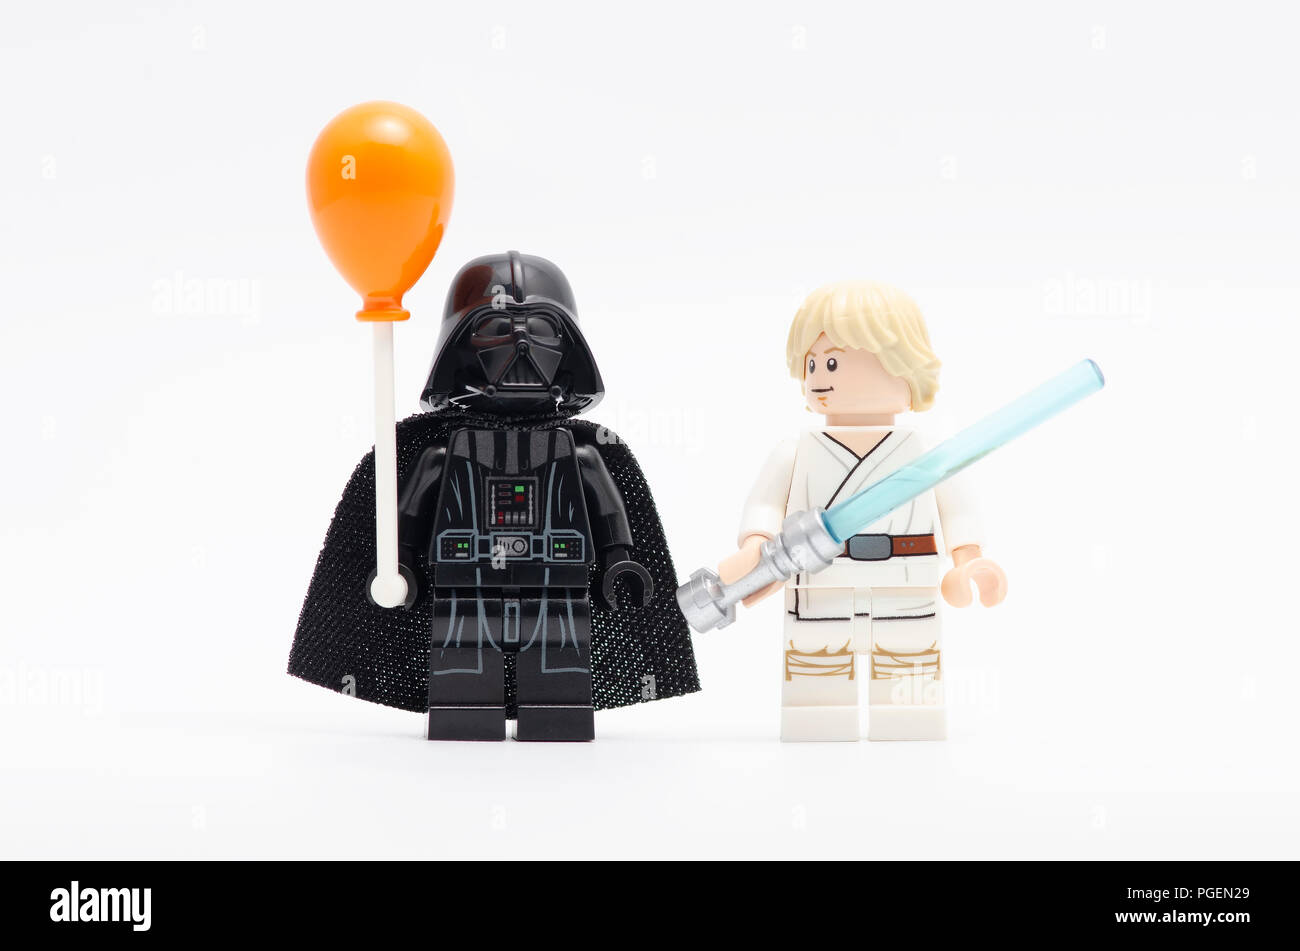 Darth Vader Holding Balloon With Luke Skywalker Watching Him Lego Minifigures Are Manufactured By The Lego Group Stock Photo Alamy